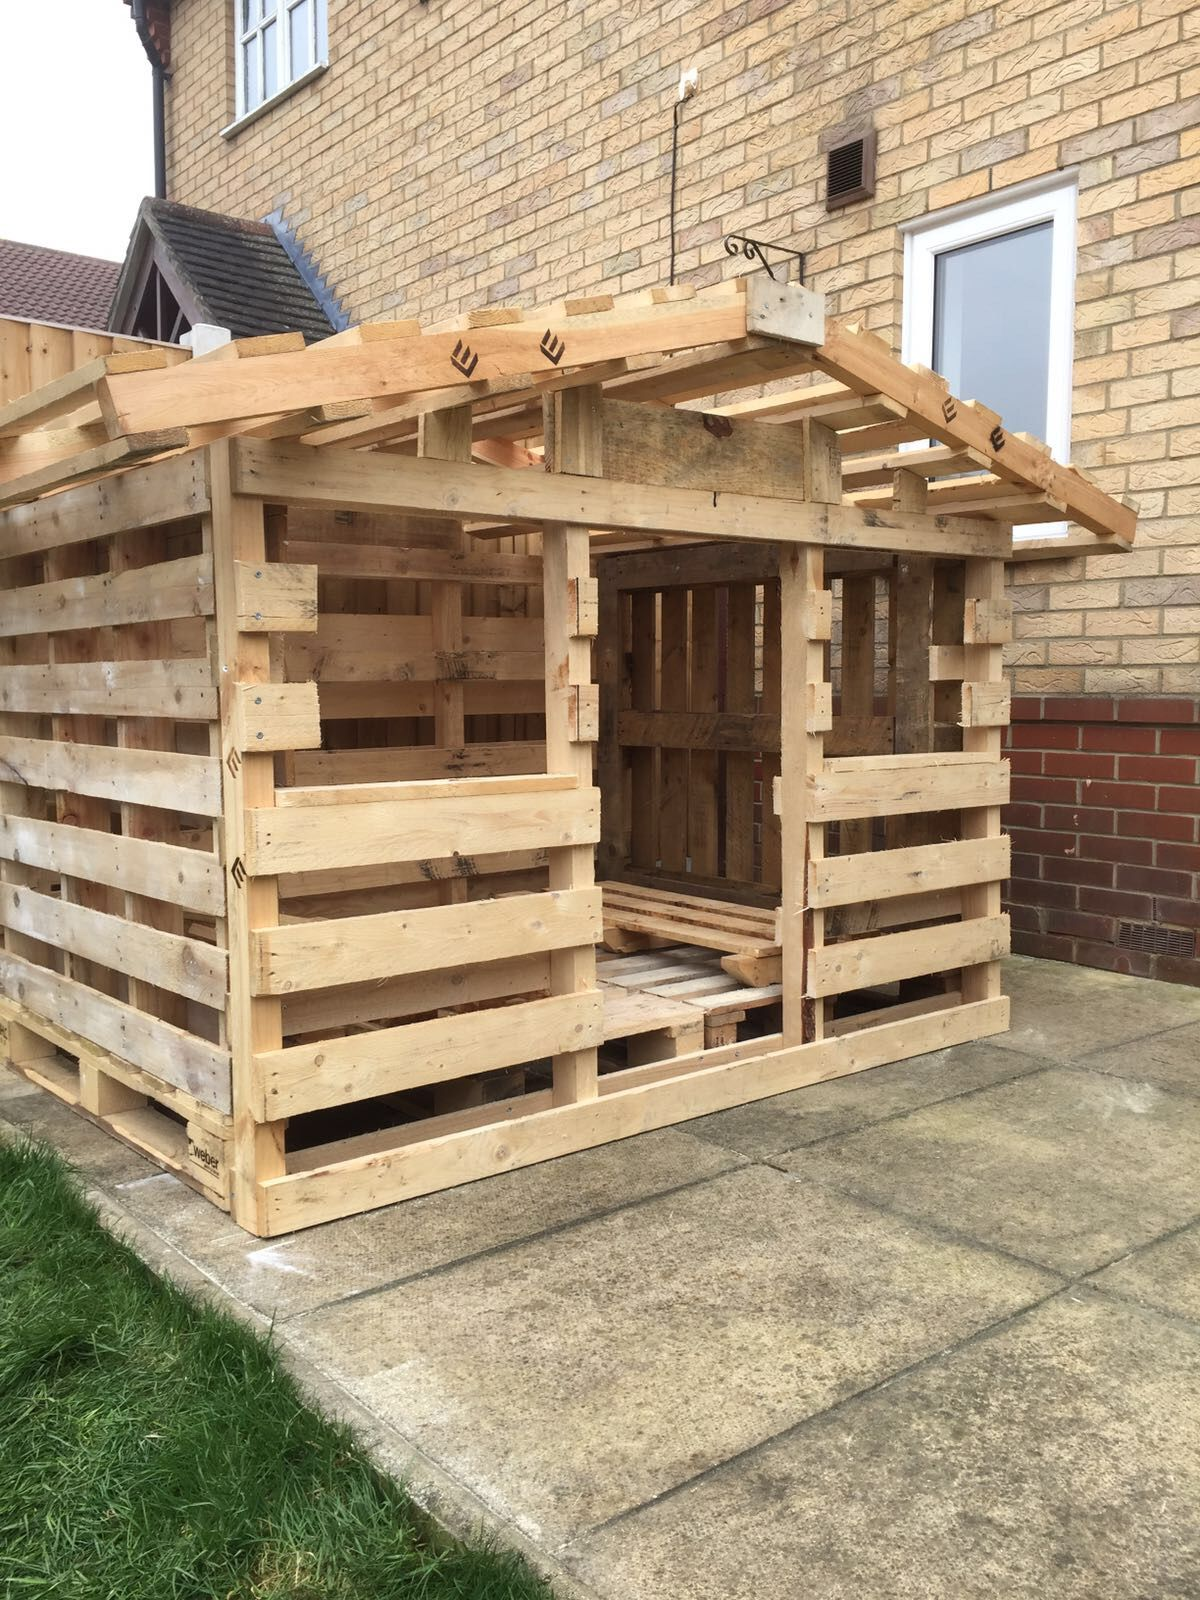 1001 pallets pallet kids playground here is a home made playground - Pallet House Build A Playhousepallet Playhousepallet Porchpallet Housepallet Playground1001 Palletstreehousespallet